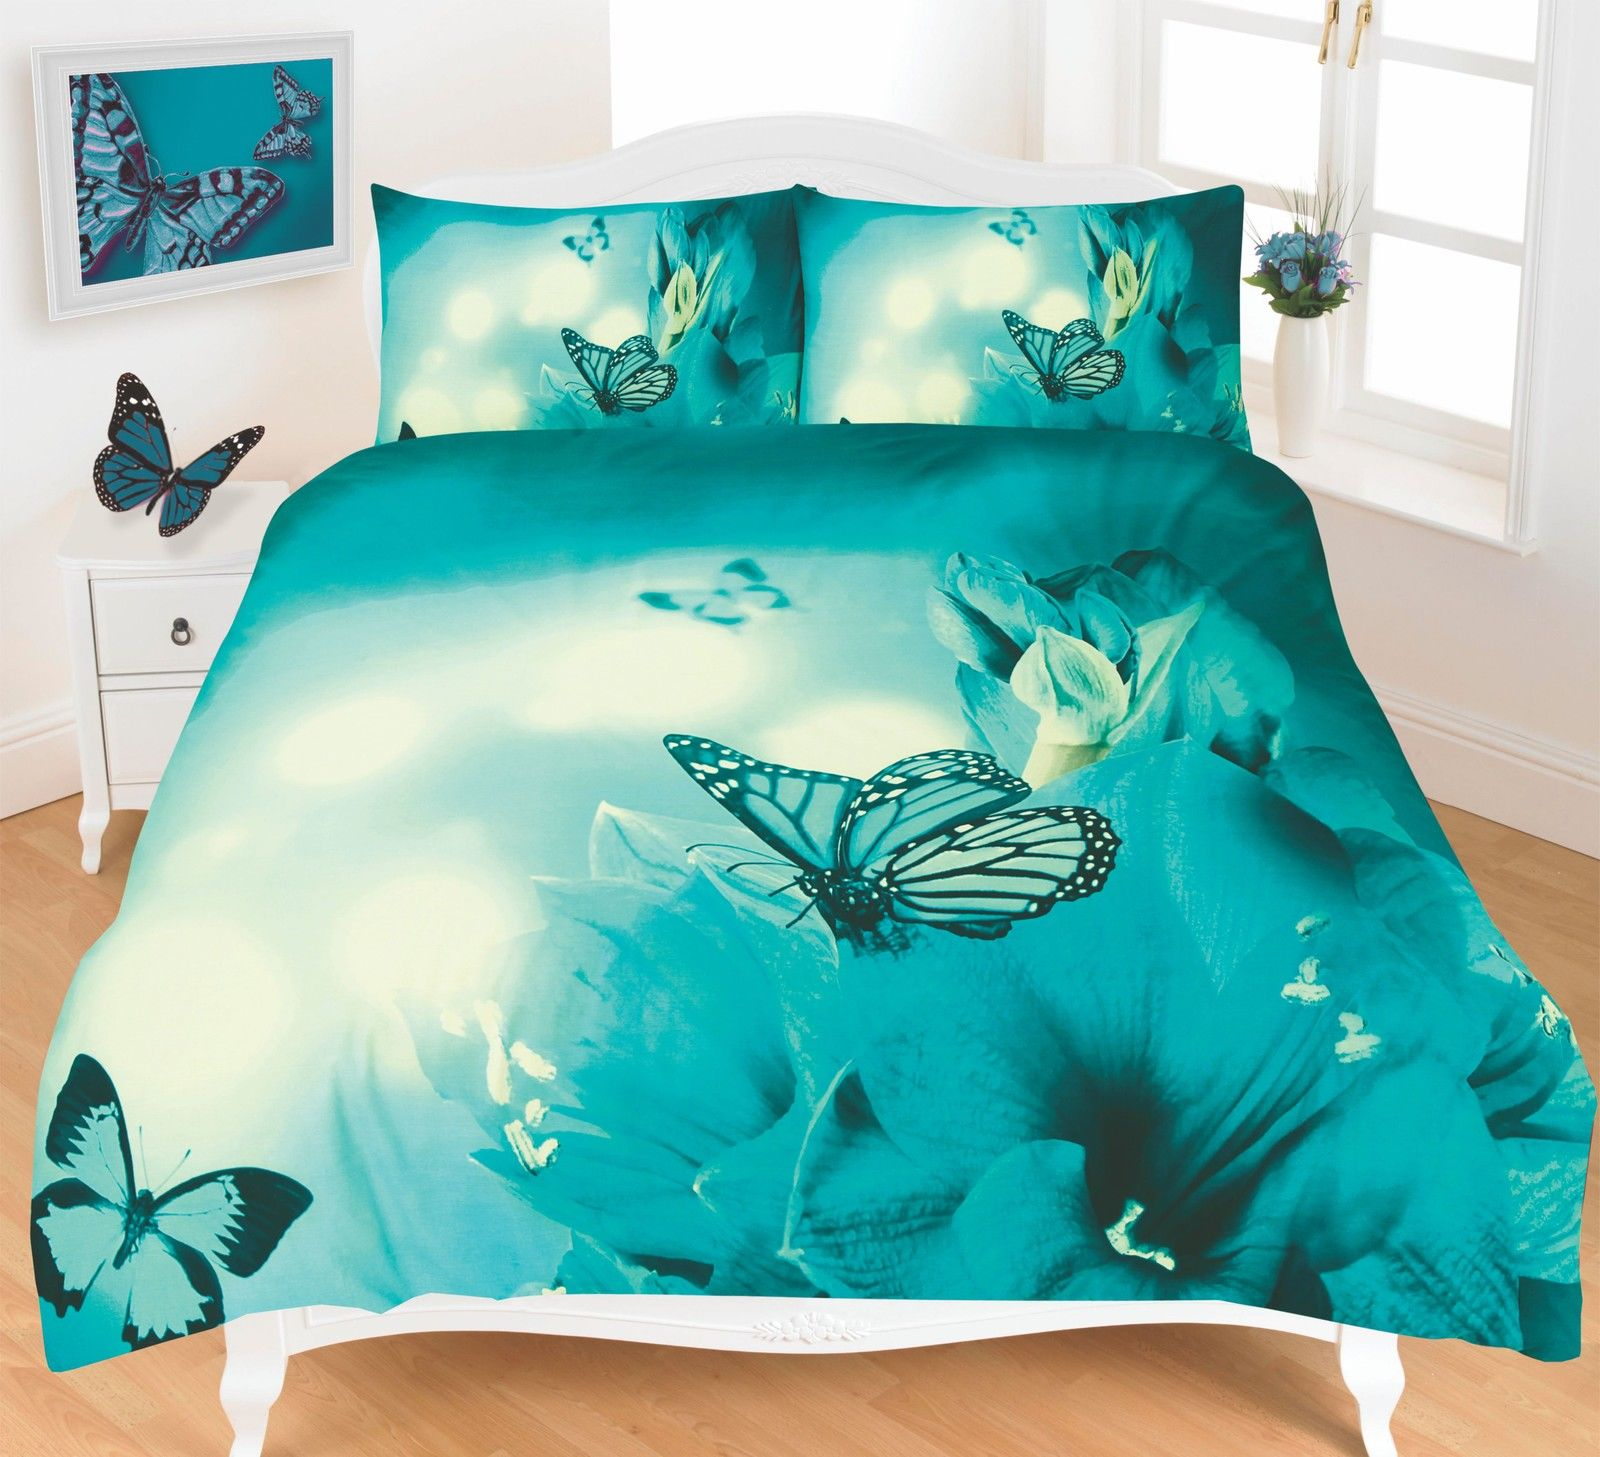 Butterfly 3d Effect Duvet Cover Bedding Set Ebay